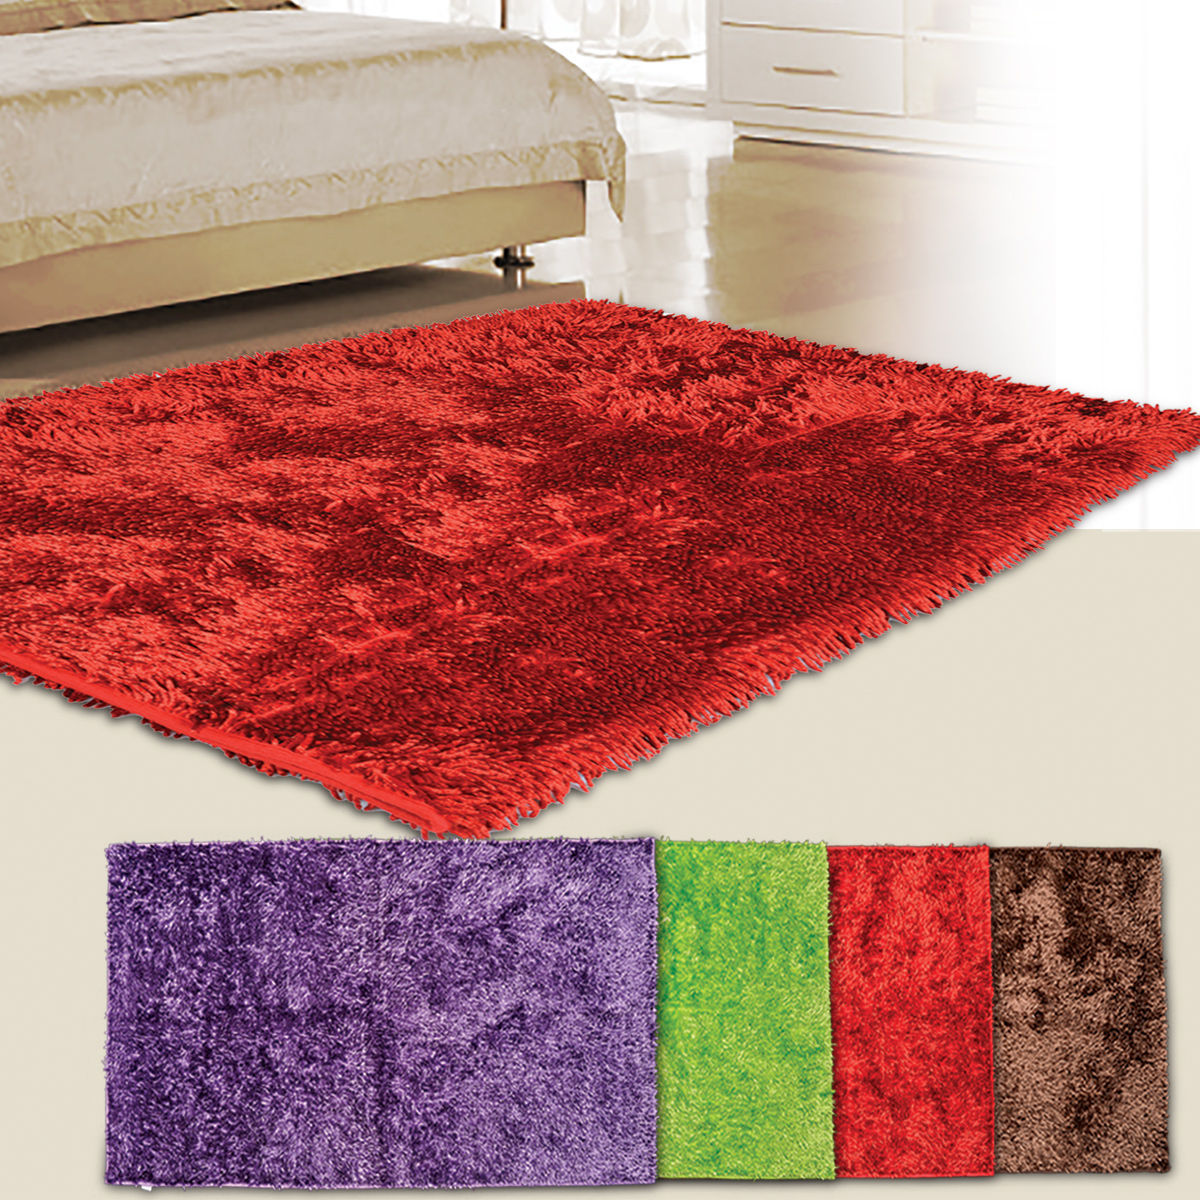 What is the best carpet to buy for the price - Feather Soft Premium Carpet